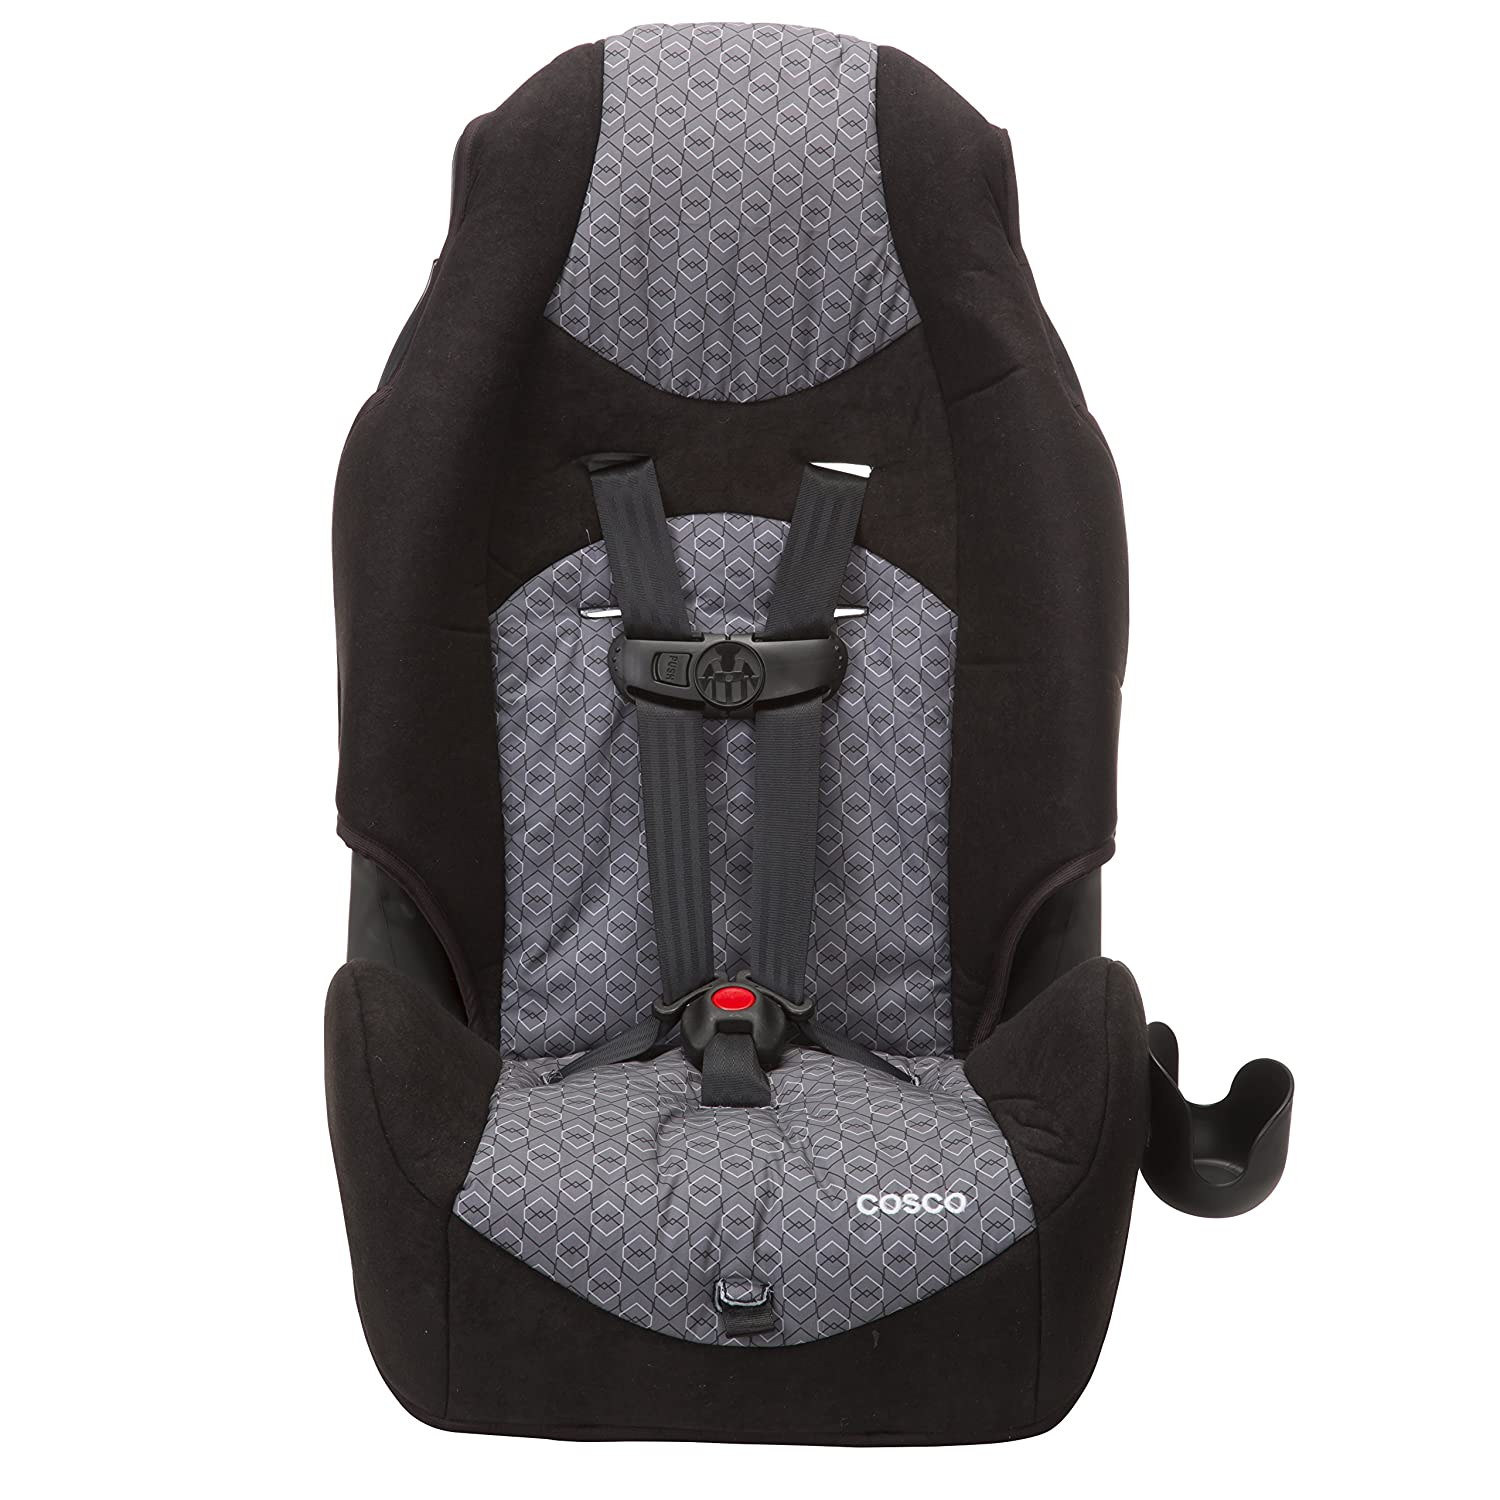 Cosco High Back Booster Car Seat Replacement Covers - Velcromag